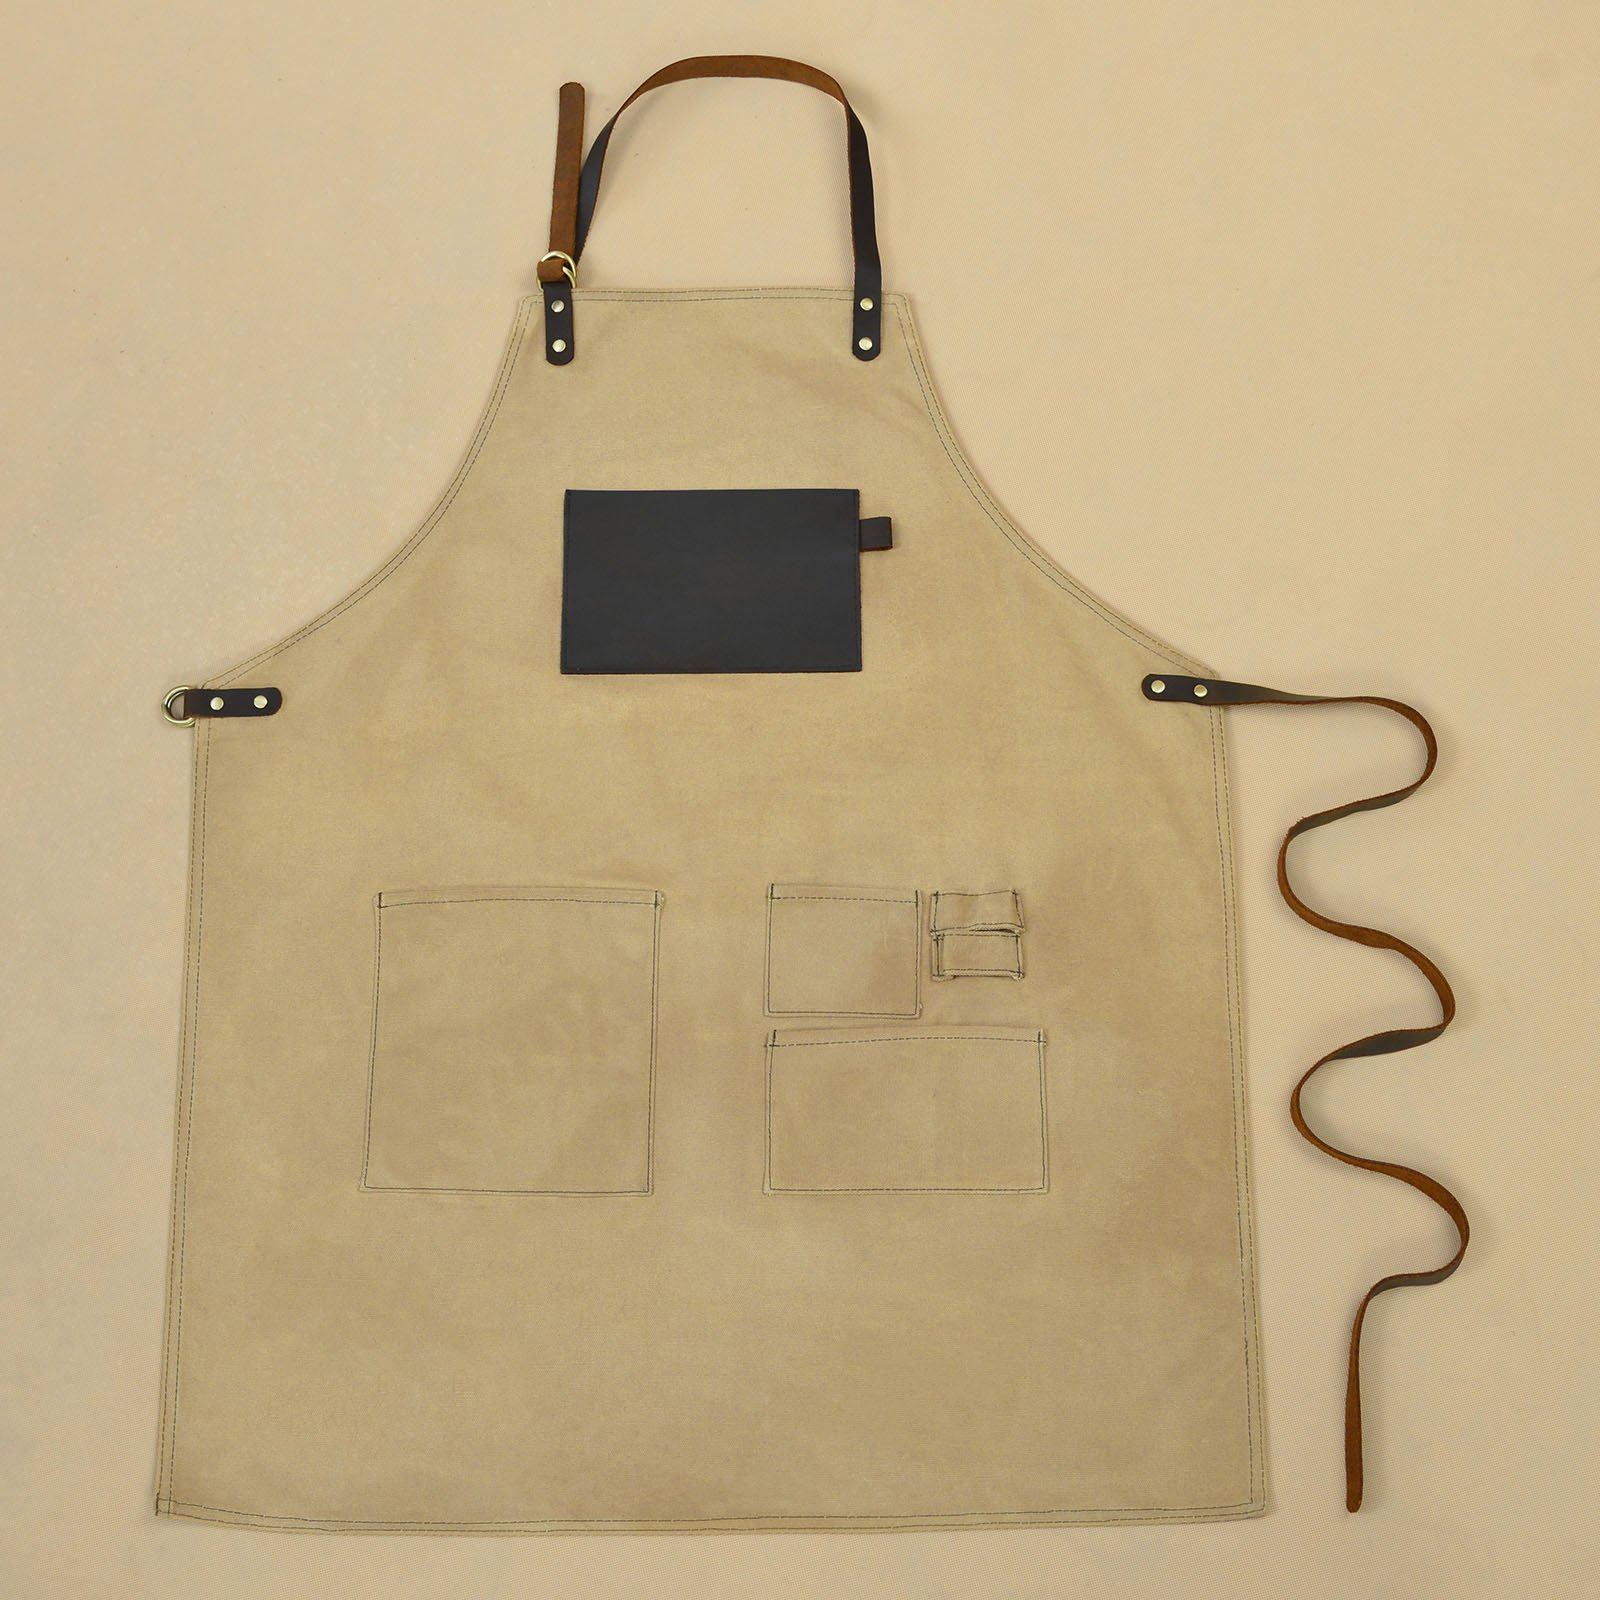 VEEYOO Heavy Duty Waxed Canvas Utility Apron with Pockets, Adjustable Shop Work Tool Welding Apron for Men and Women, Tan, 27x34 inches by VEEYOO (Image #5)